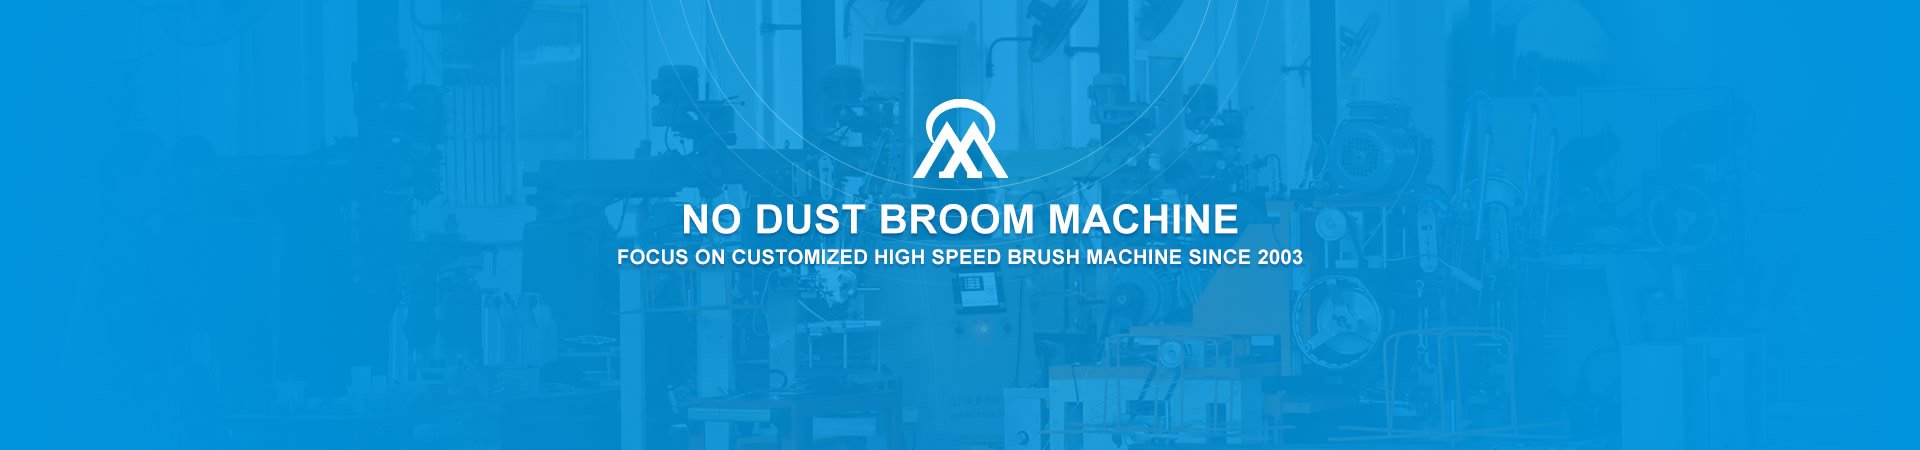 news-Meixin-India cargo 2Aixs Broom Make Machine and 1set Industrial flat brush tufting machine load